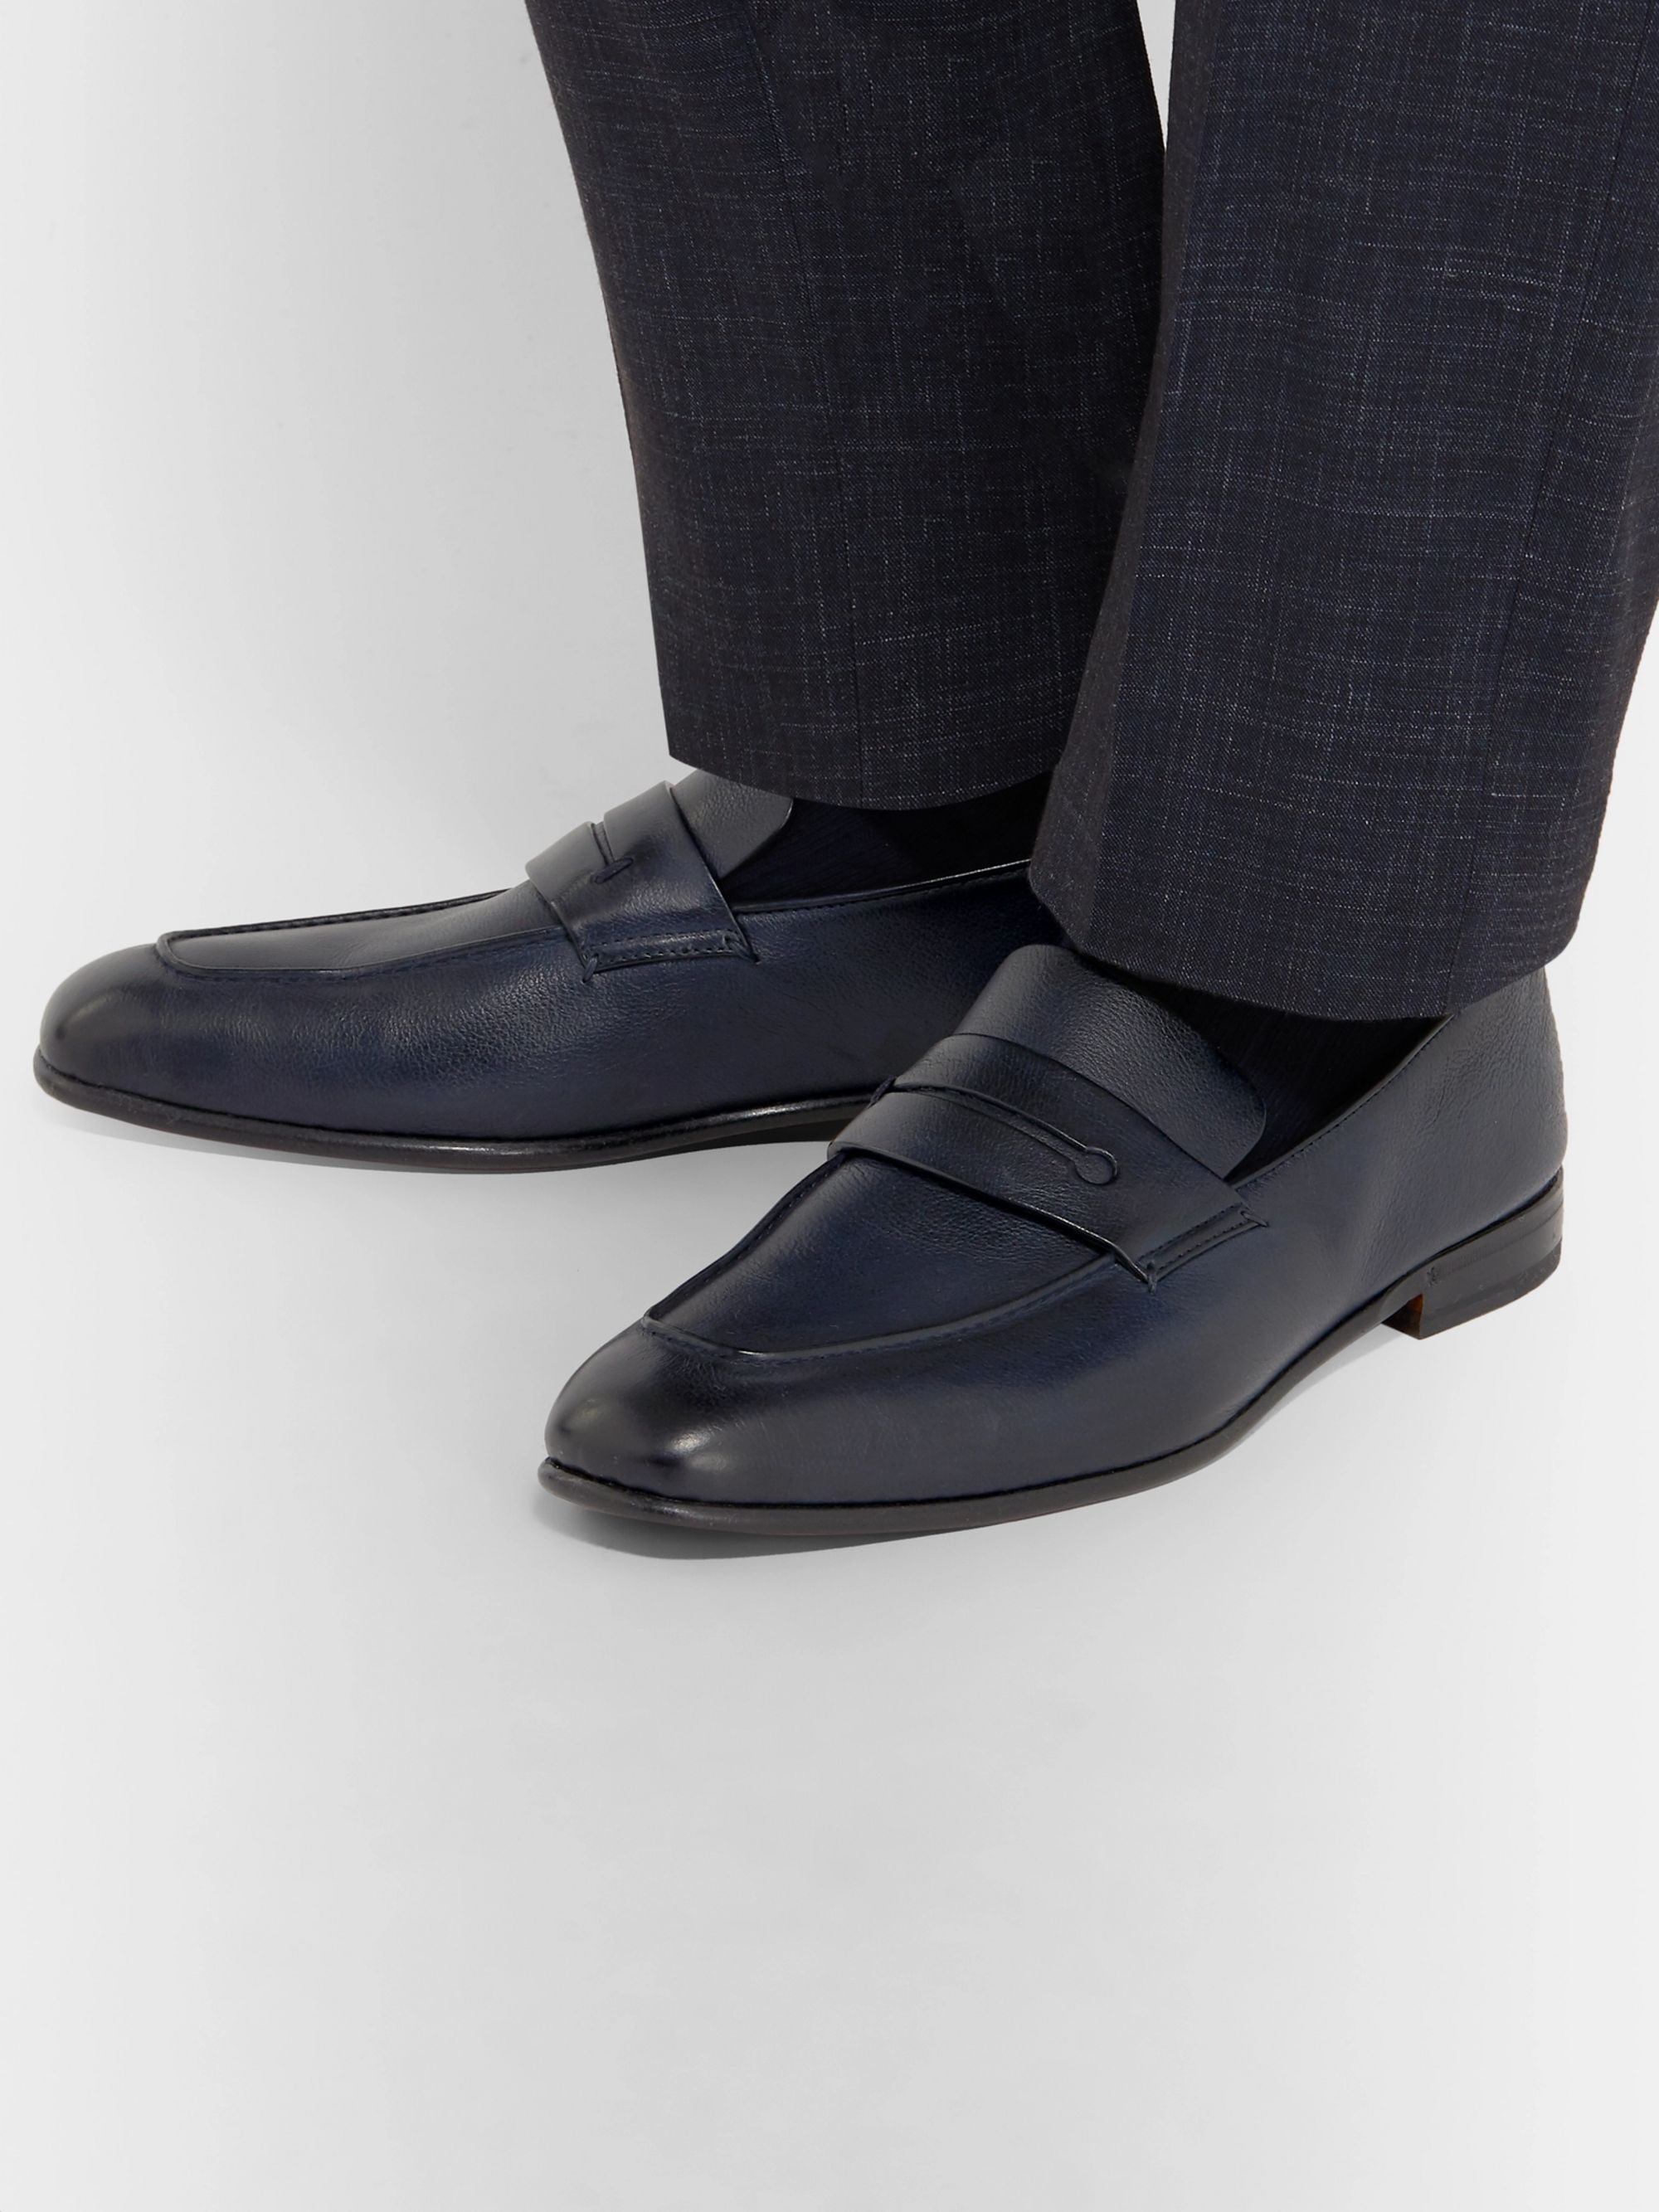 Ermenegildo Zegna Asola Leather Penny Loafers